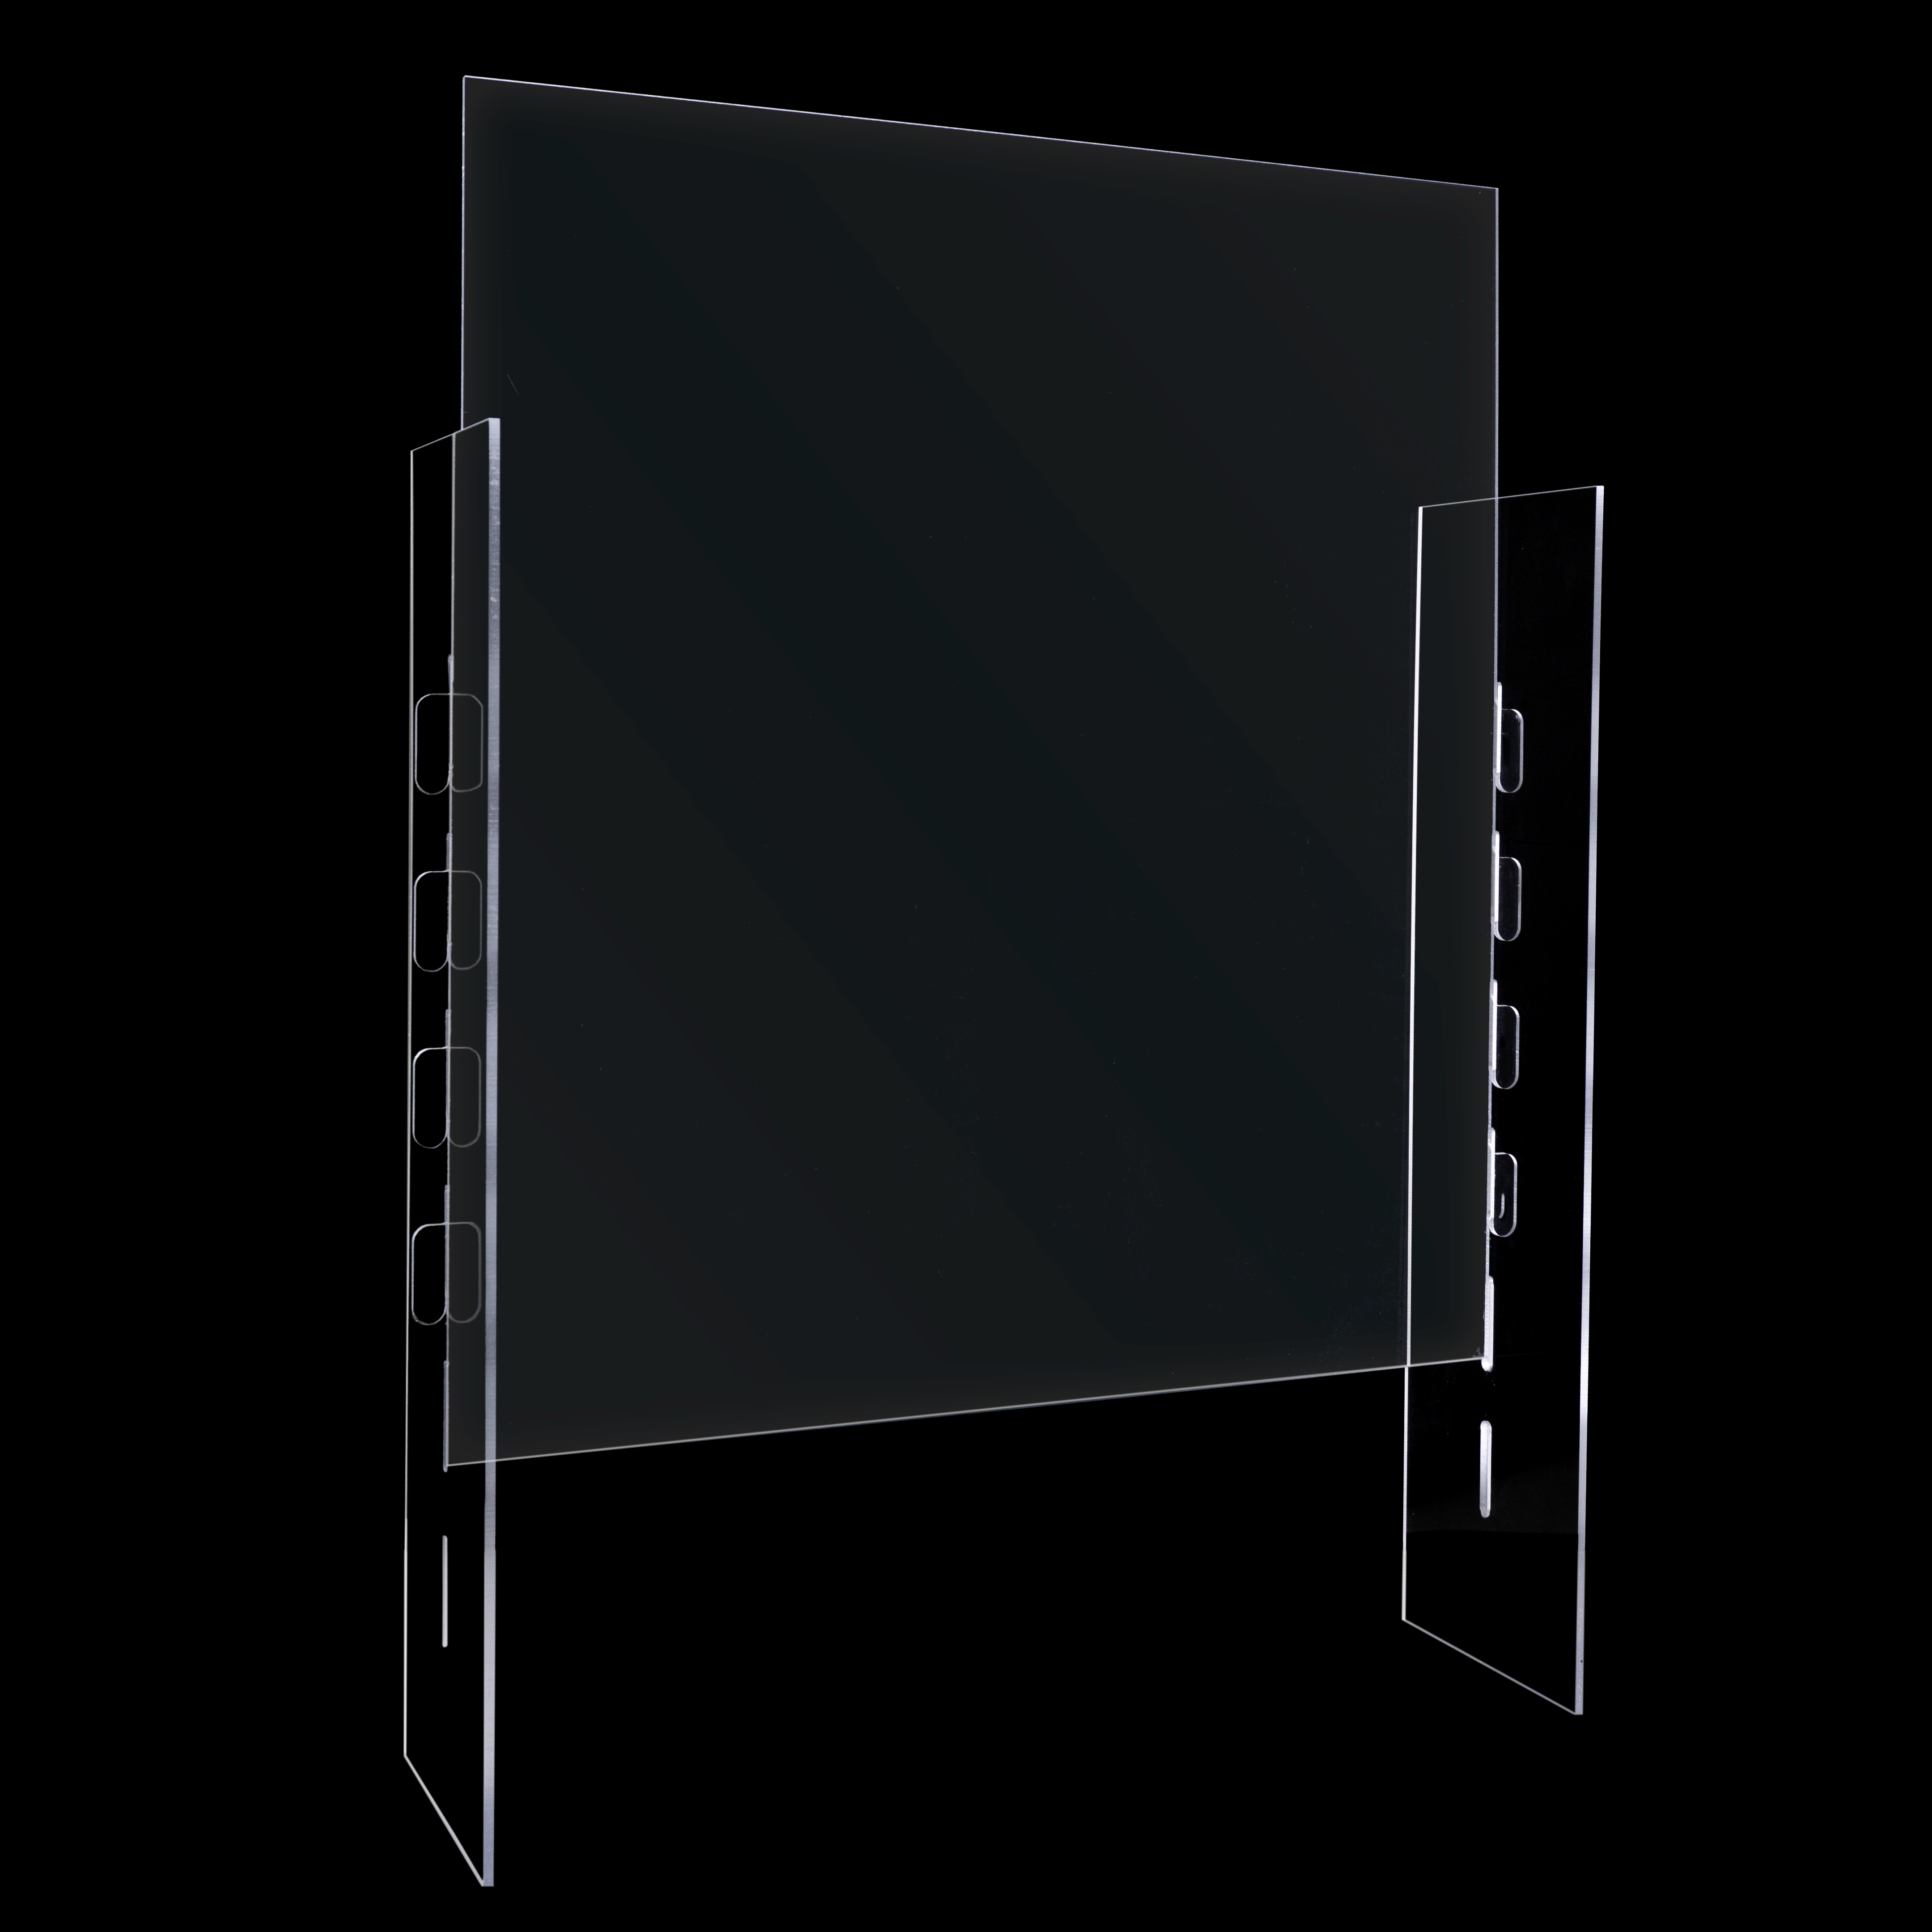 Covid-19 Adjustable plexiglass sneezeguard for 8 inch window, 4 inch window, or no window.